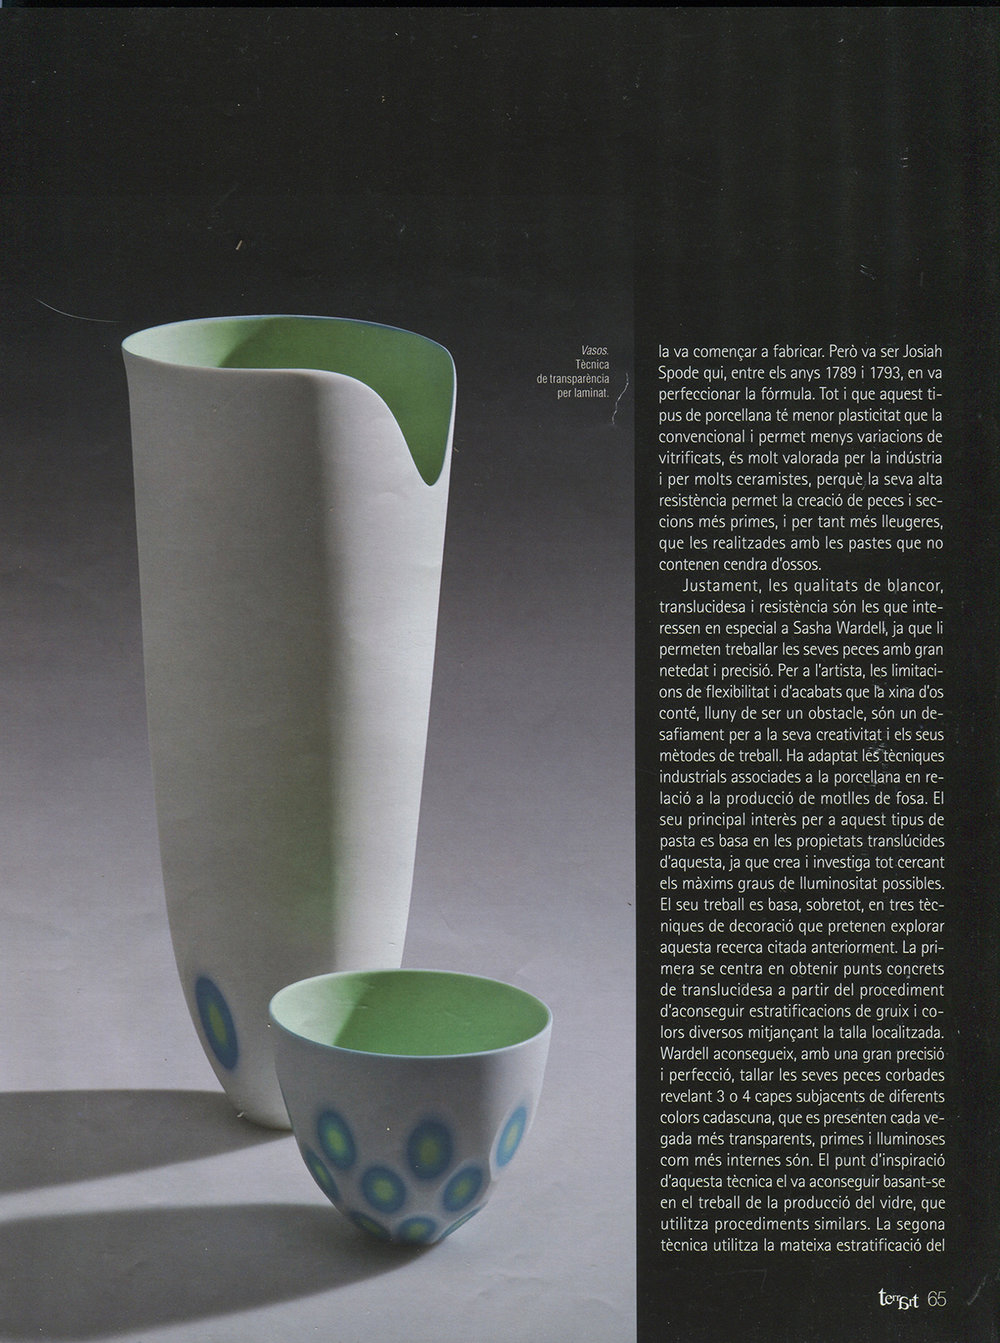 CeramicaContemporania(TerrArt)p65.jpg